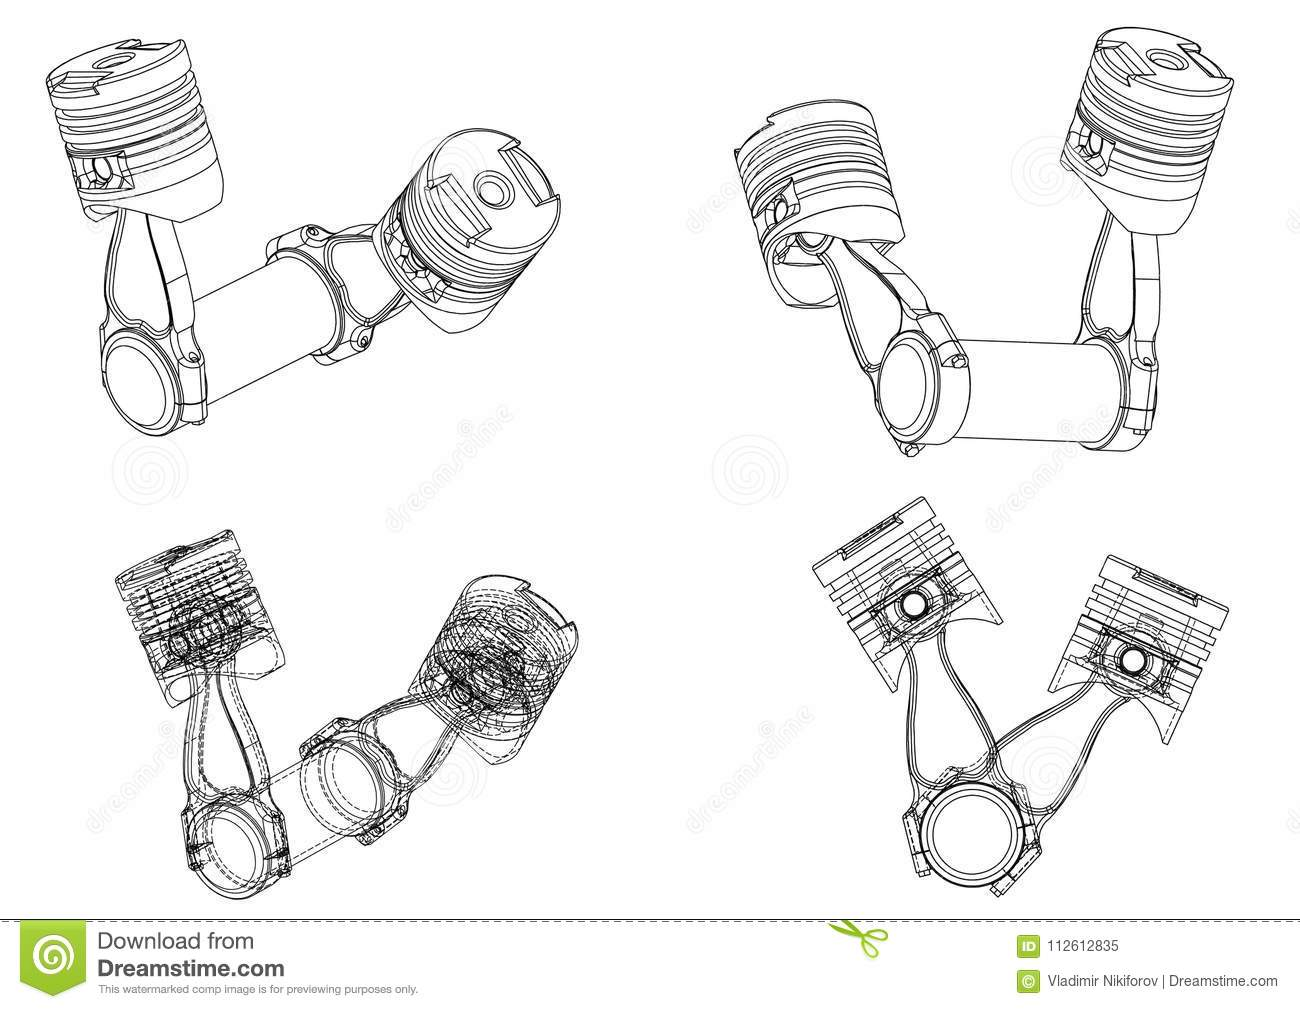 3d model of piston stock vector. Illustration of element